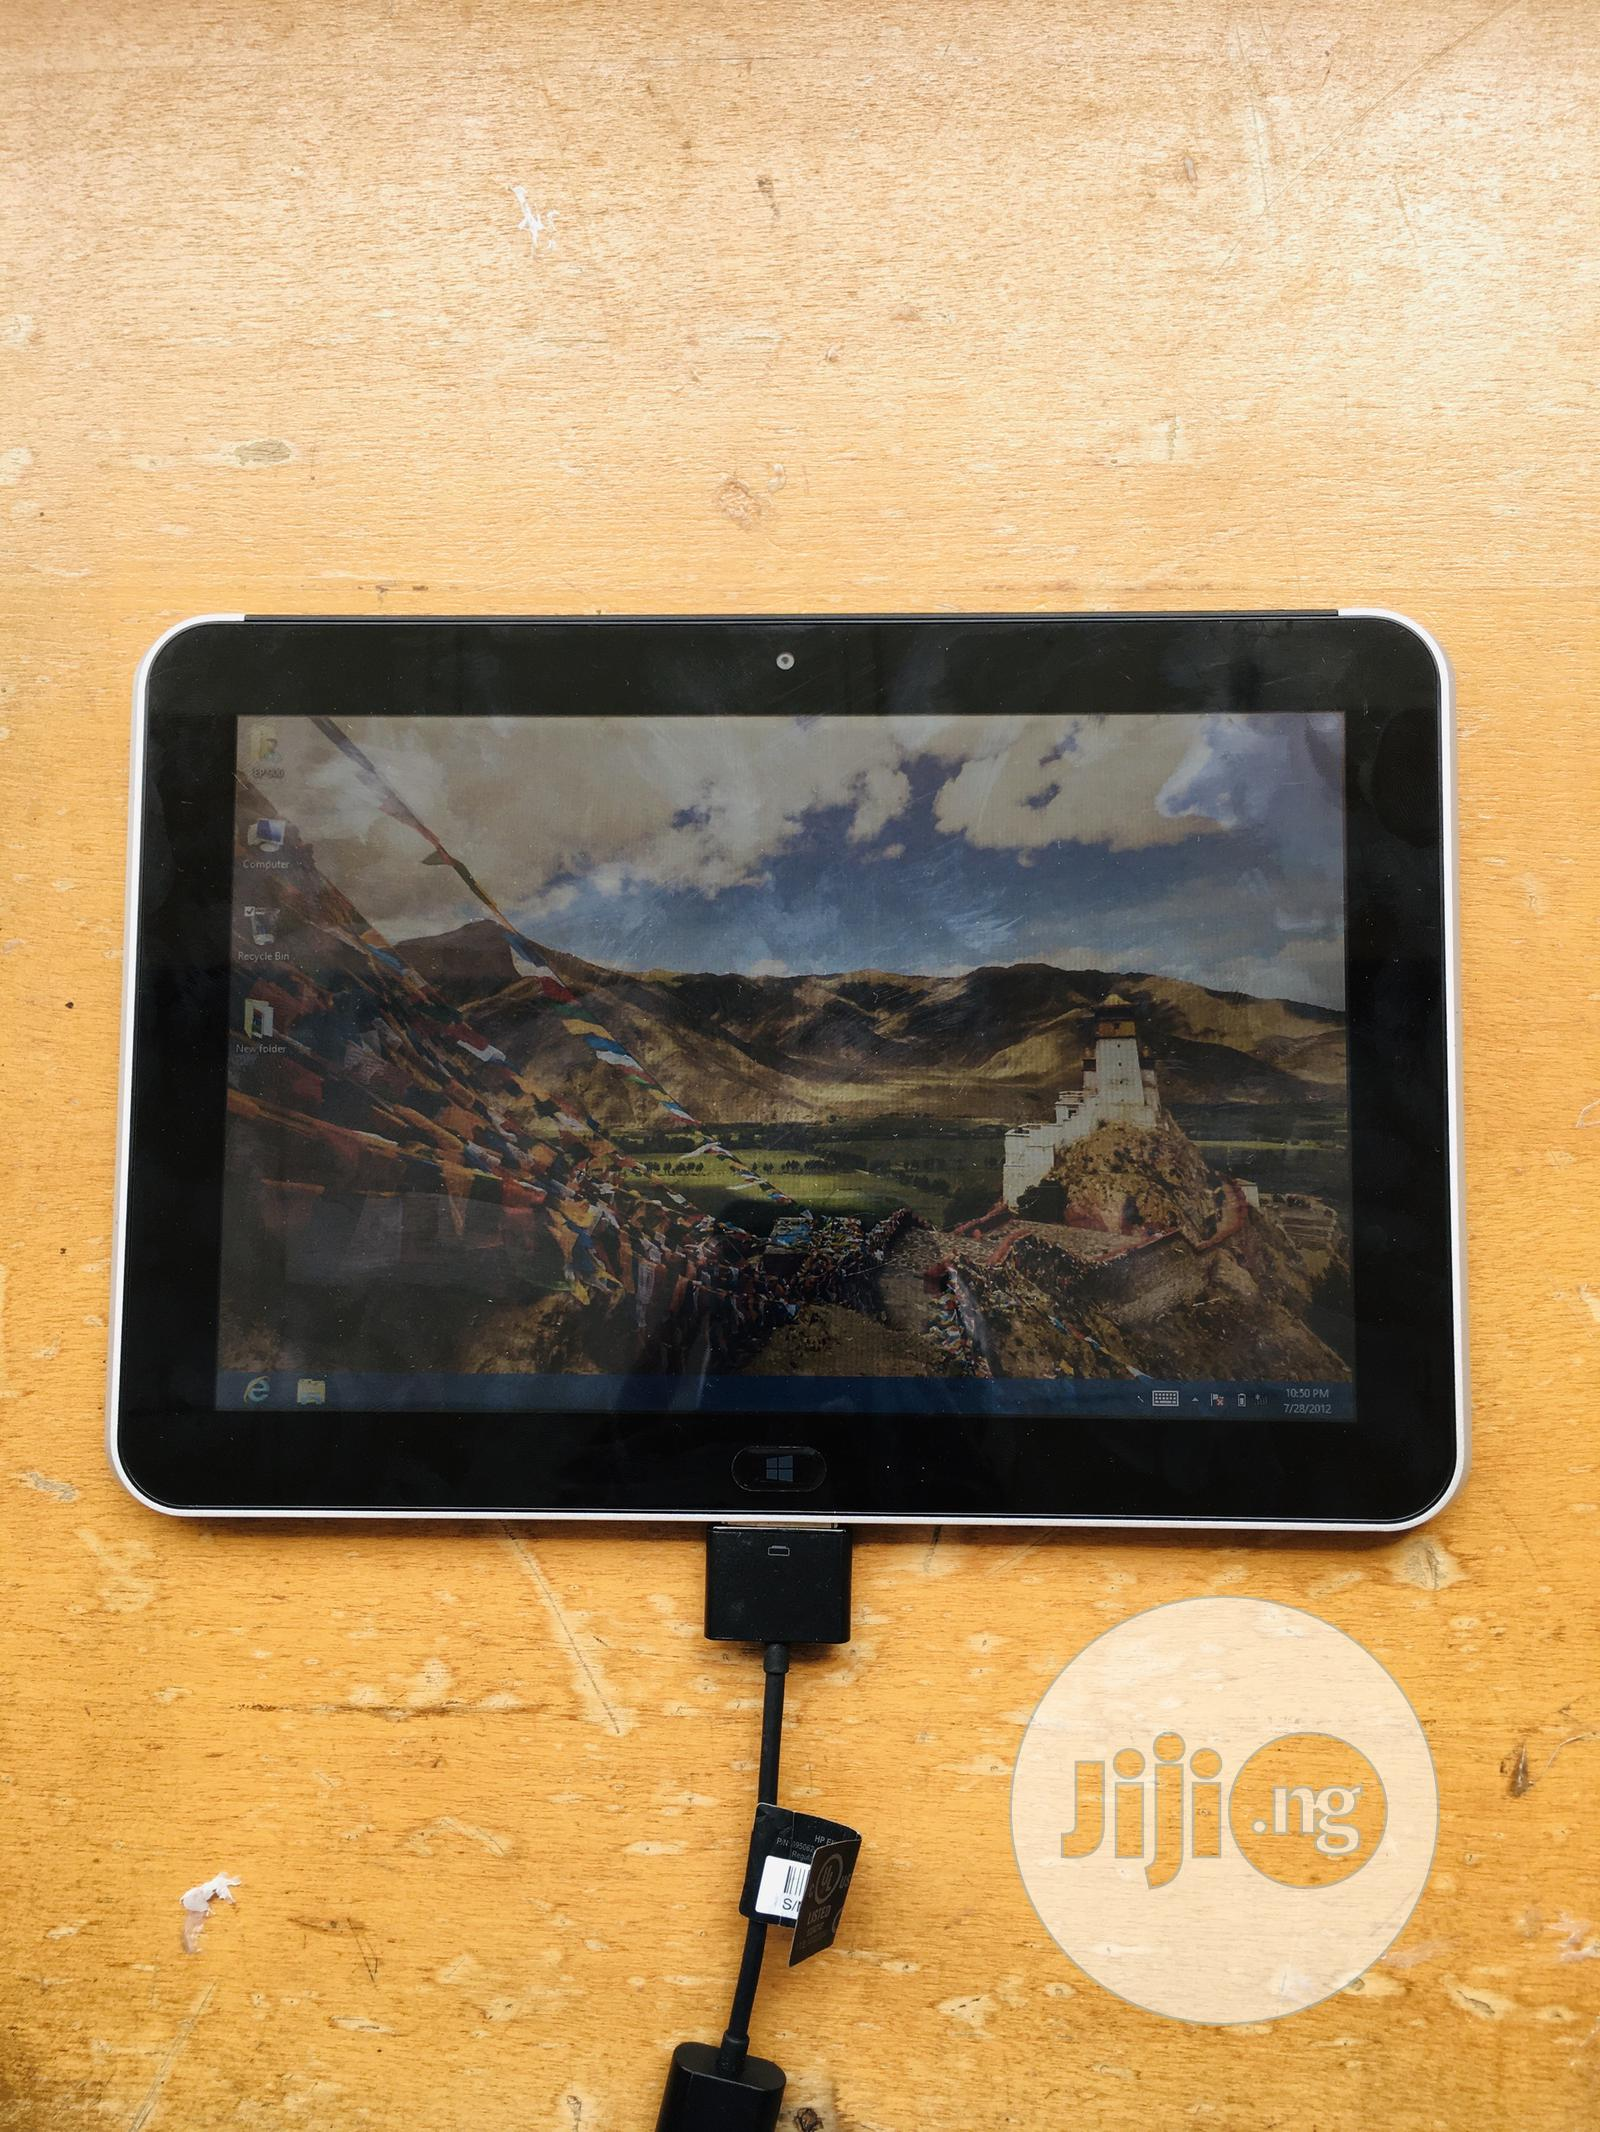 HP ElitePad 900 G1 64 GB Gray | Tablets for sale in Wuse 2, Abuja (FCT) State, Nigeria